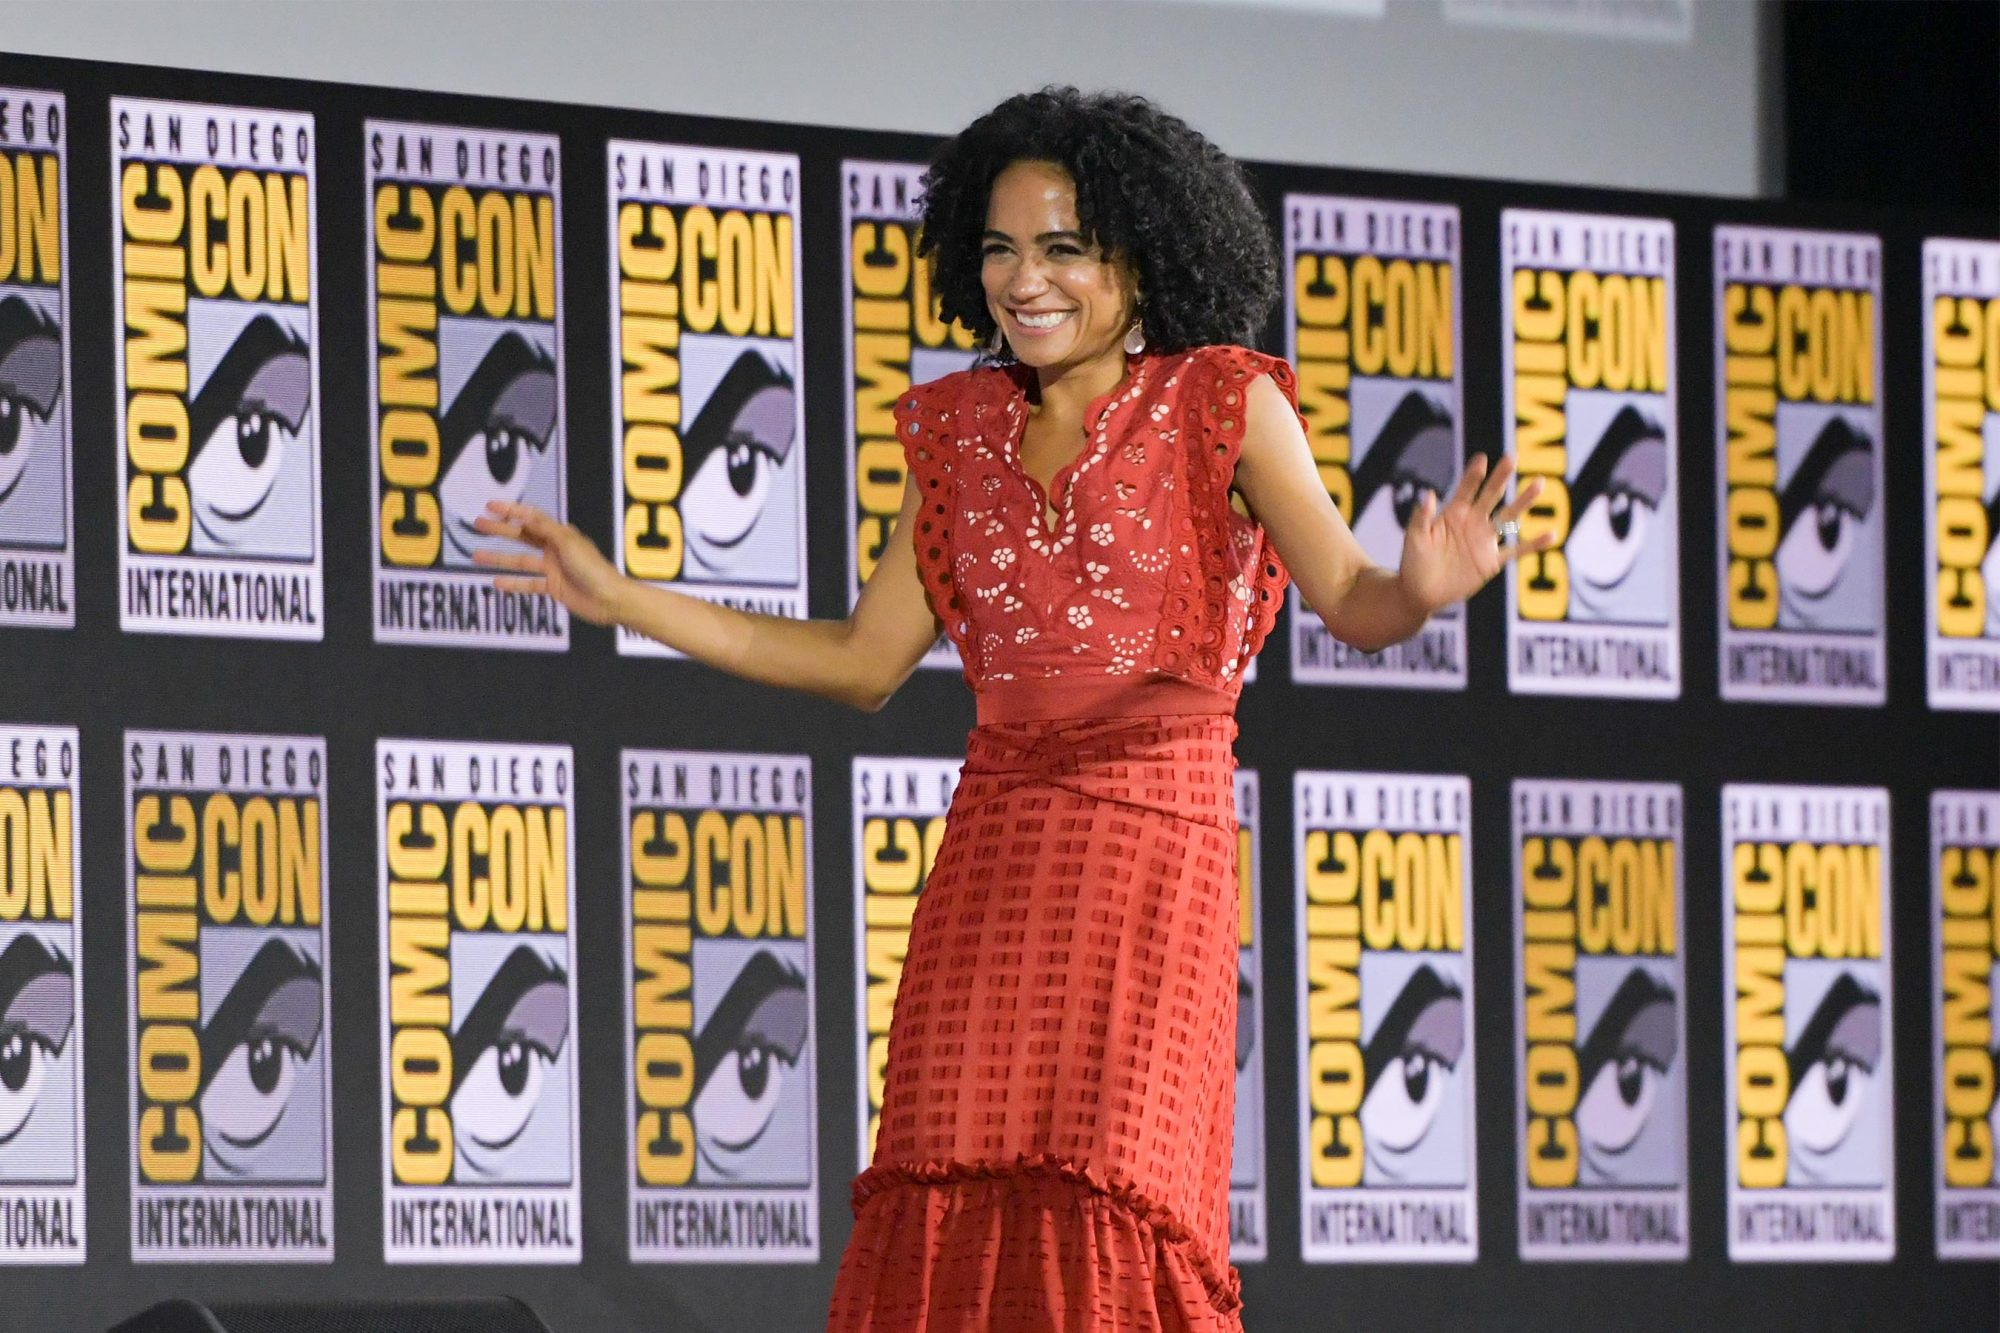 US actress Lauren Ridloff arrives on stage for the Marvel panel in Hall H of the Convention Center during Comic Con in San Diego, California on July 20, 2019. (Photo by Chris Delmas / AFP) (Photo credit should read CHRIS DELMAS/AFP/Getty Images)